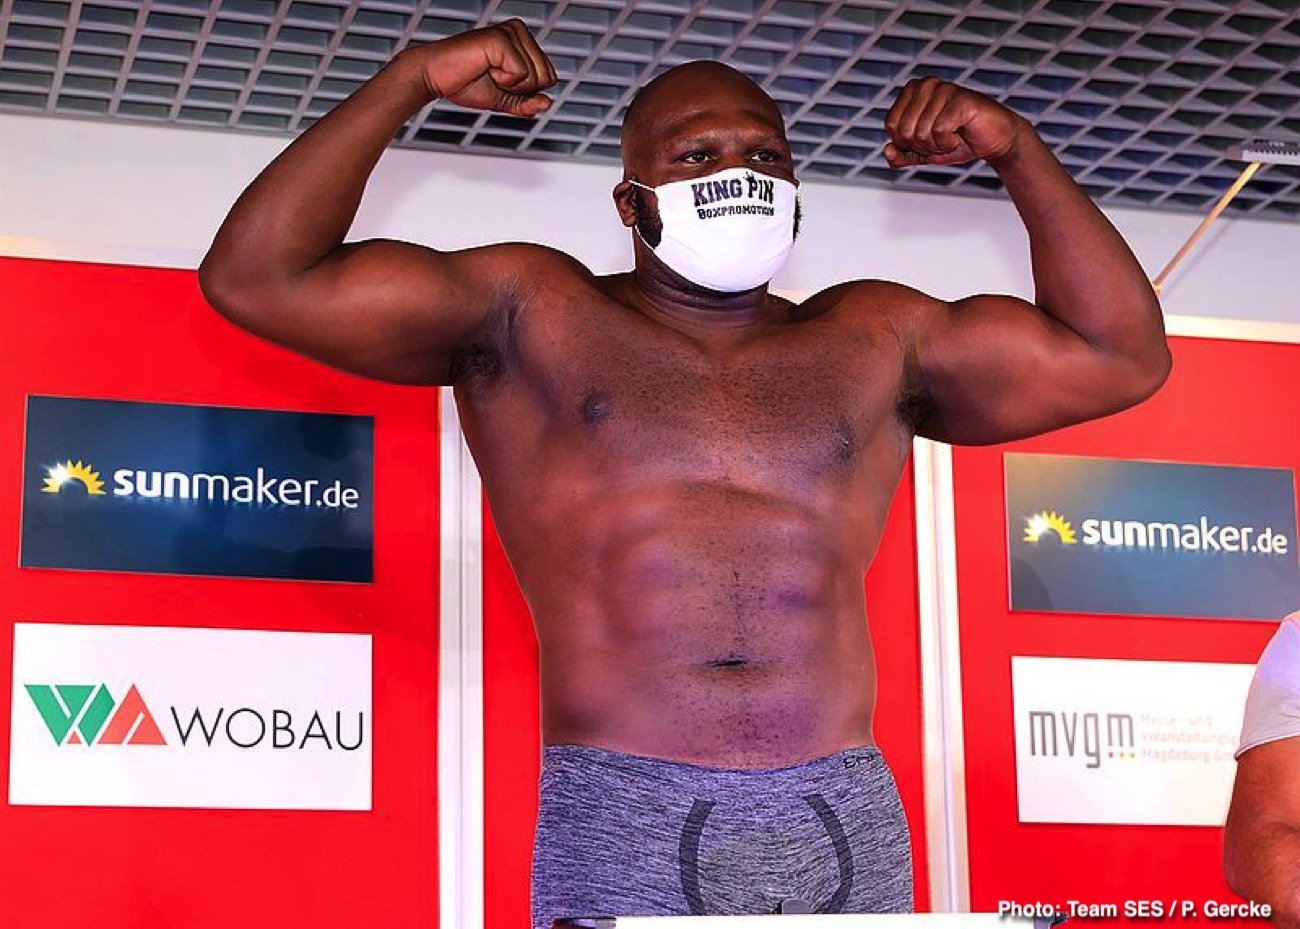 Kevin Johnson, Yoan Pablo Hernandez - Yoan Pablo Hernandez returns back to the ring after six years and will fight tough Kevin Johnson on August 22 in Magdeburg, Germany. Hernandez will campaign at heavyweight and will be promoted by SES Boxing.